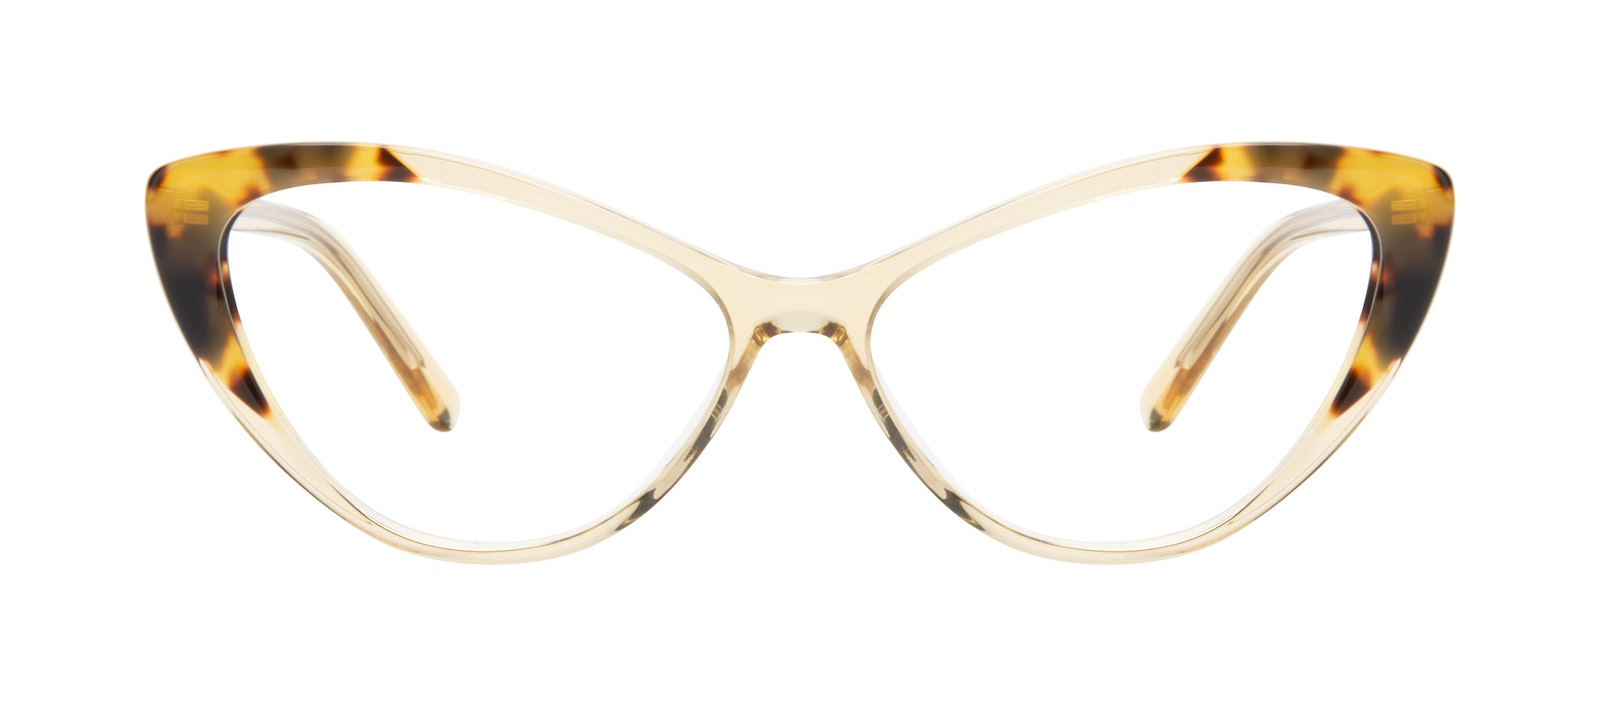 Affordable Fashion Glasses Cat Eye Eyeglasses Women Gossamer Golden Tort Front